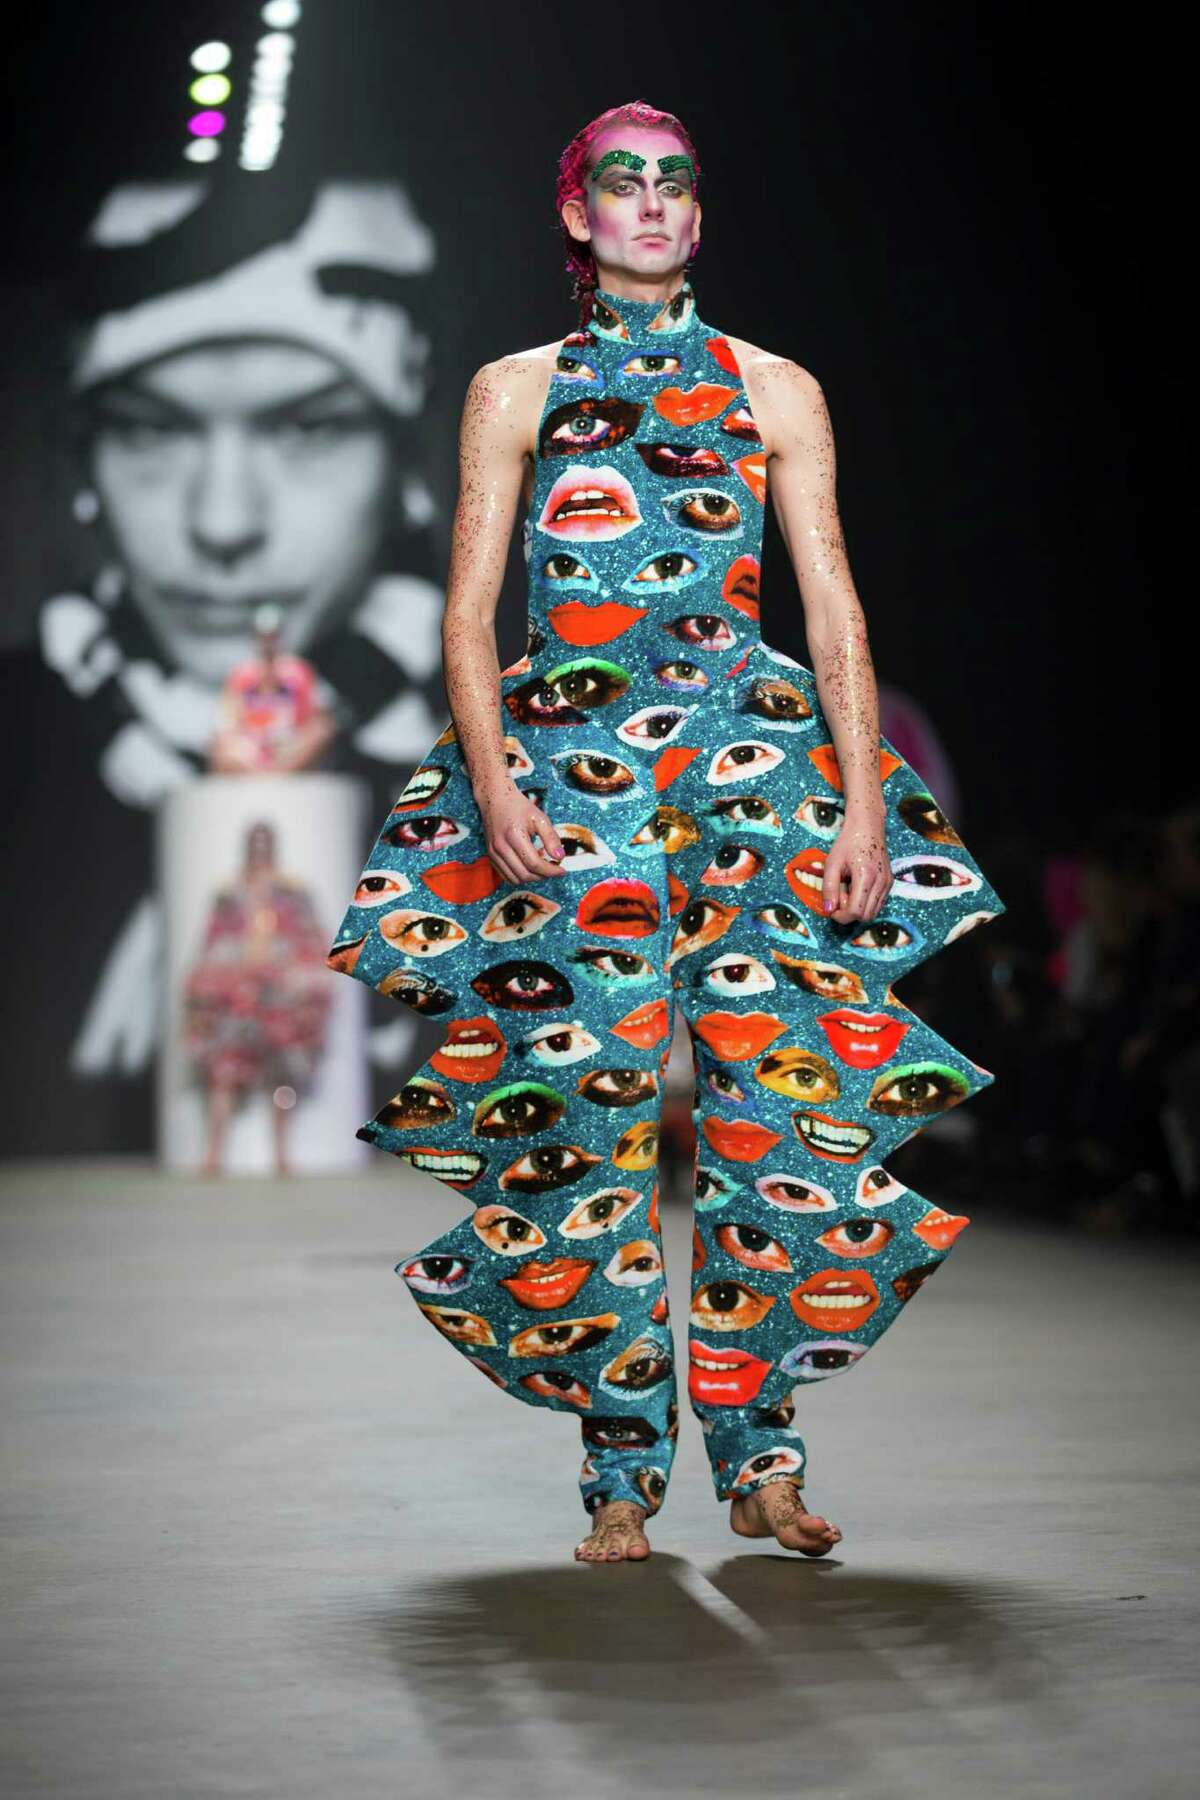 A model wears a creation for designer Bas Kosters' Fall/Winter 2015 collection during the Mercedes-Benz Fashion Week in Amsterdam, Netherlands, Friday, Jan. 23, 2015.